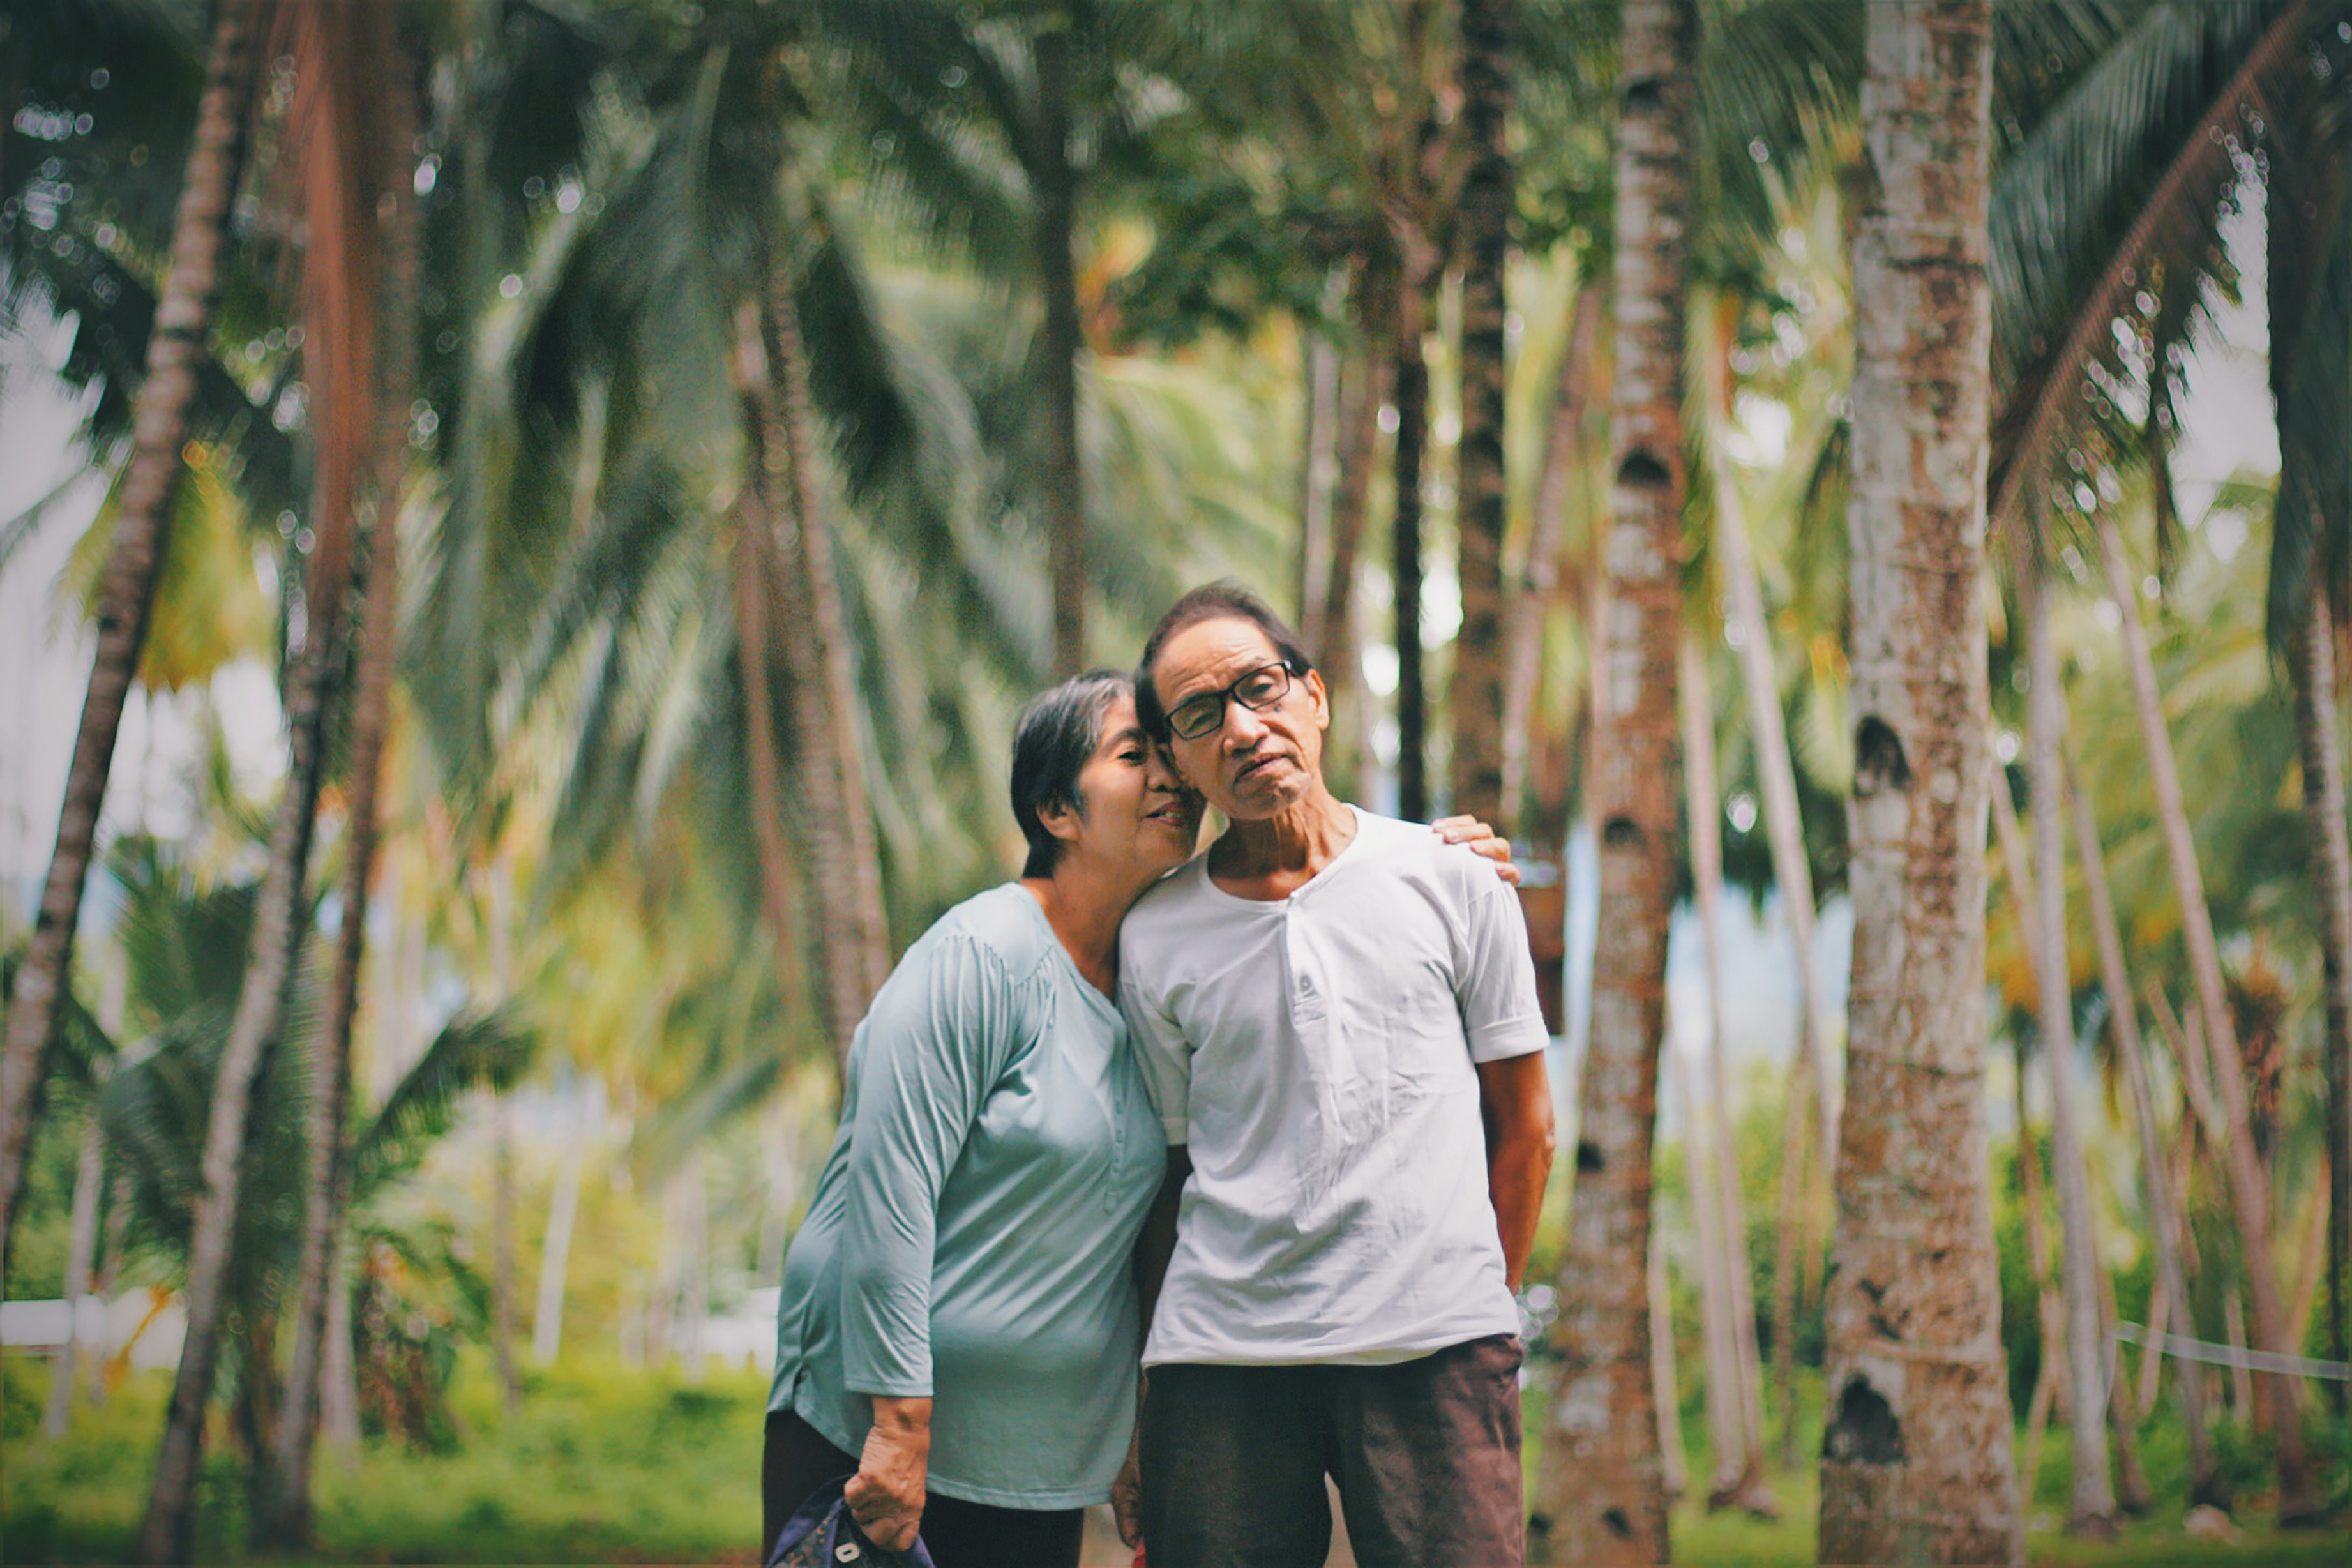 elderly woman putting arm around husband standing among tropical trees